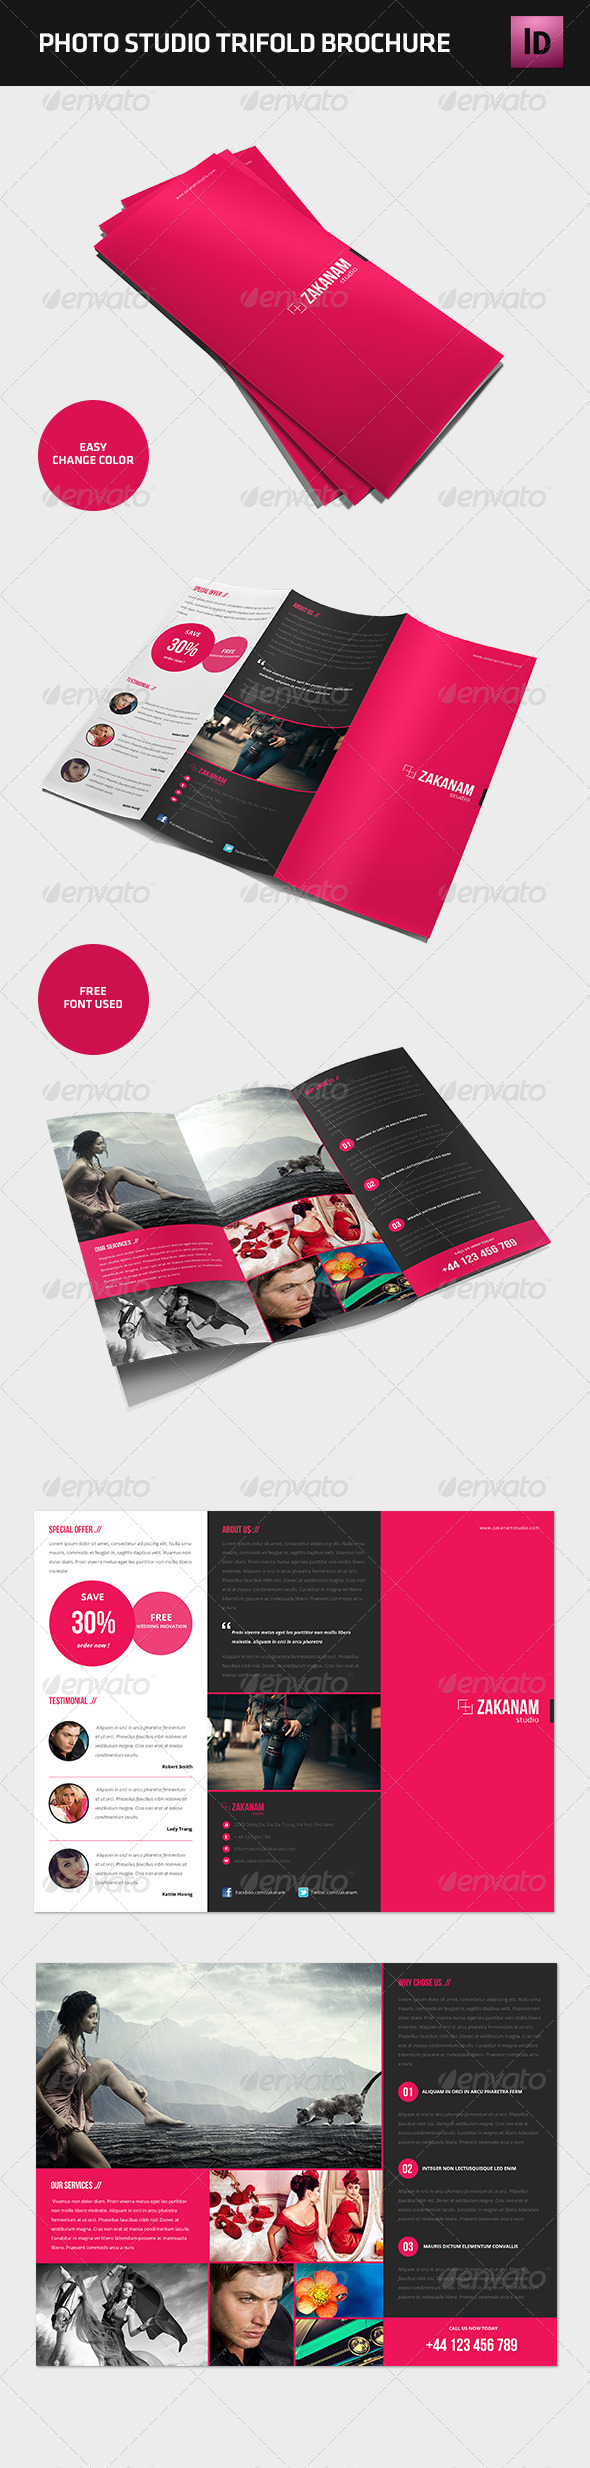 GraphicRiver Modern Photography Studio Tri-Fold Brochure 4583832